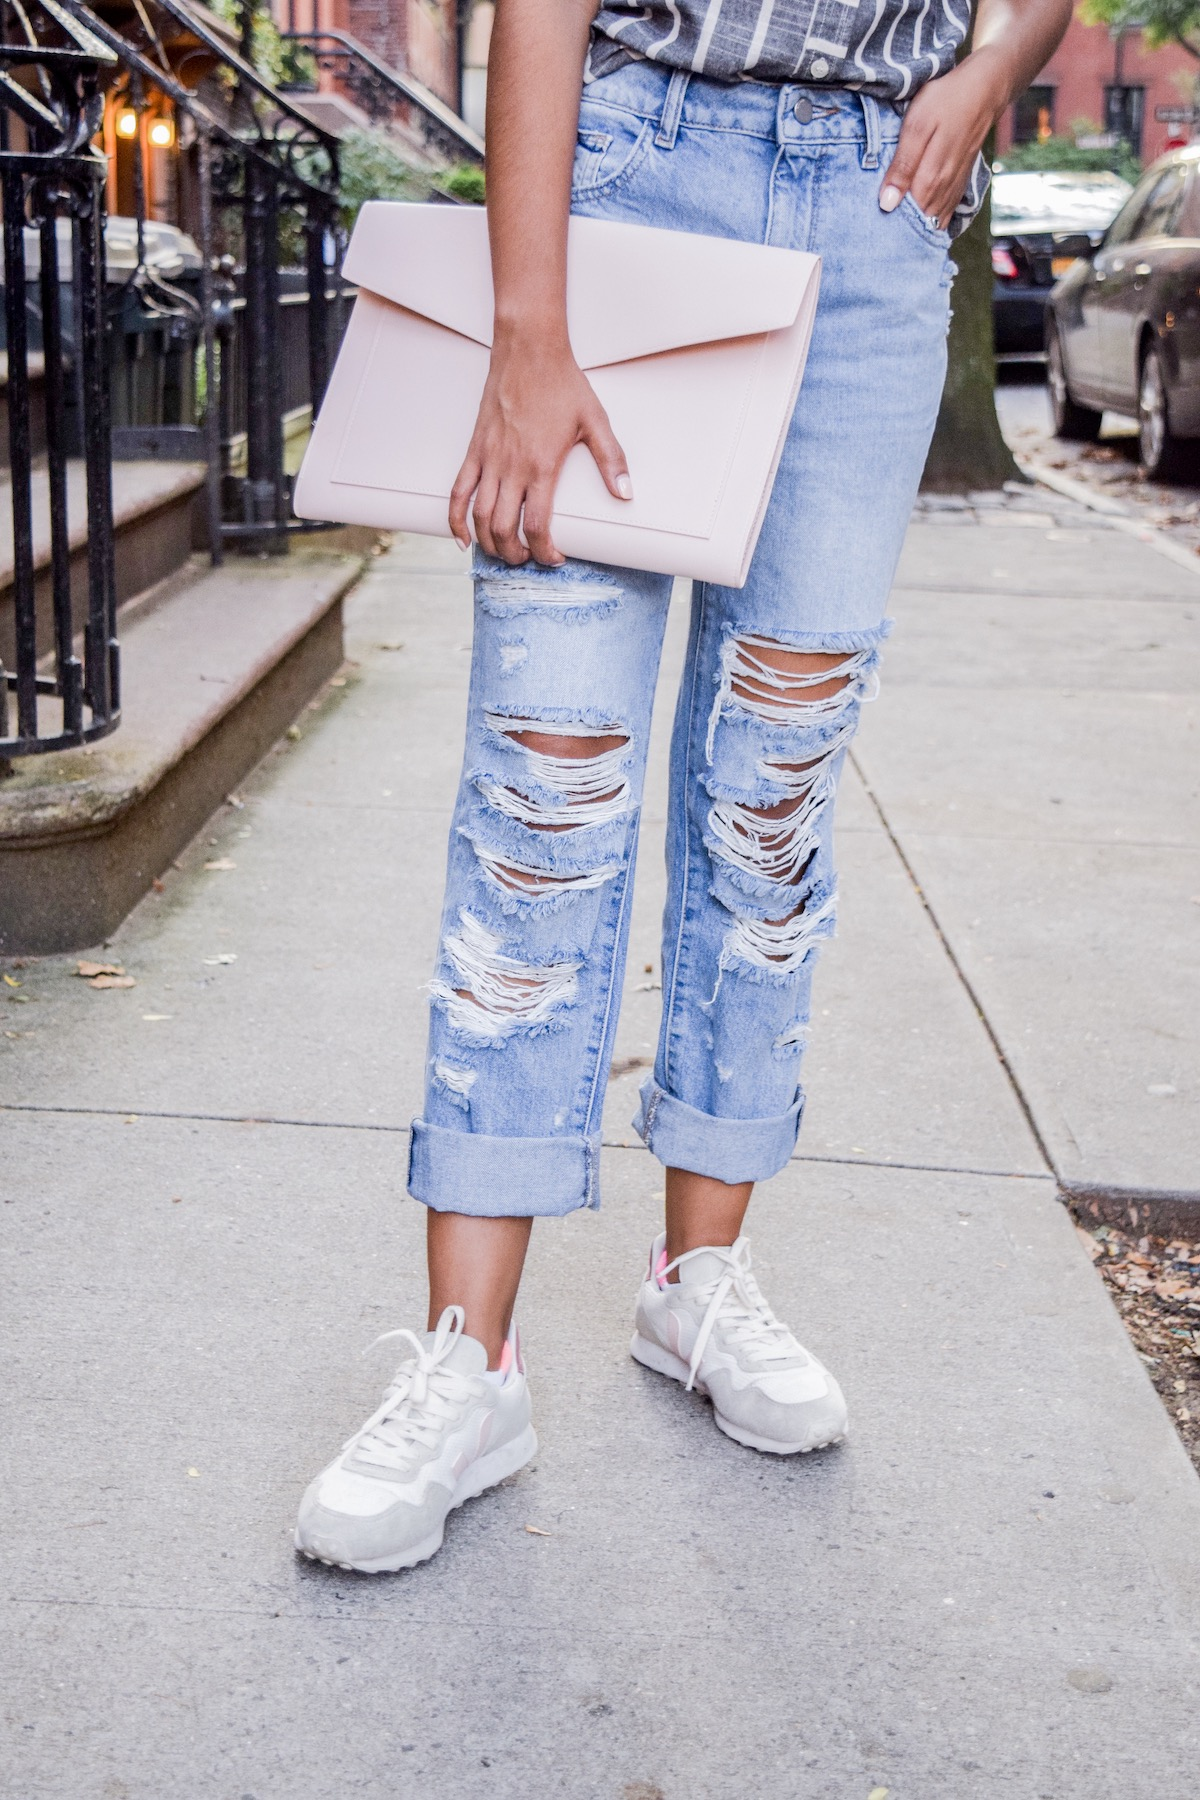 Distressed denim with sneakers // A Week Of Conscious Trend-Forward Outfits With Sabrina Ramkhelawan From Flaunt Your Fancy on The Good Trade